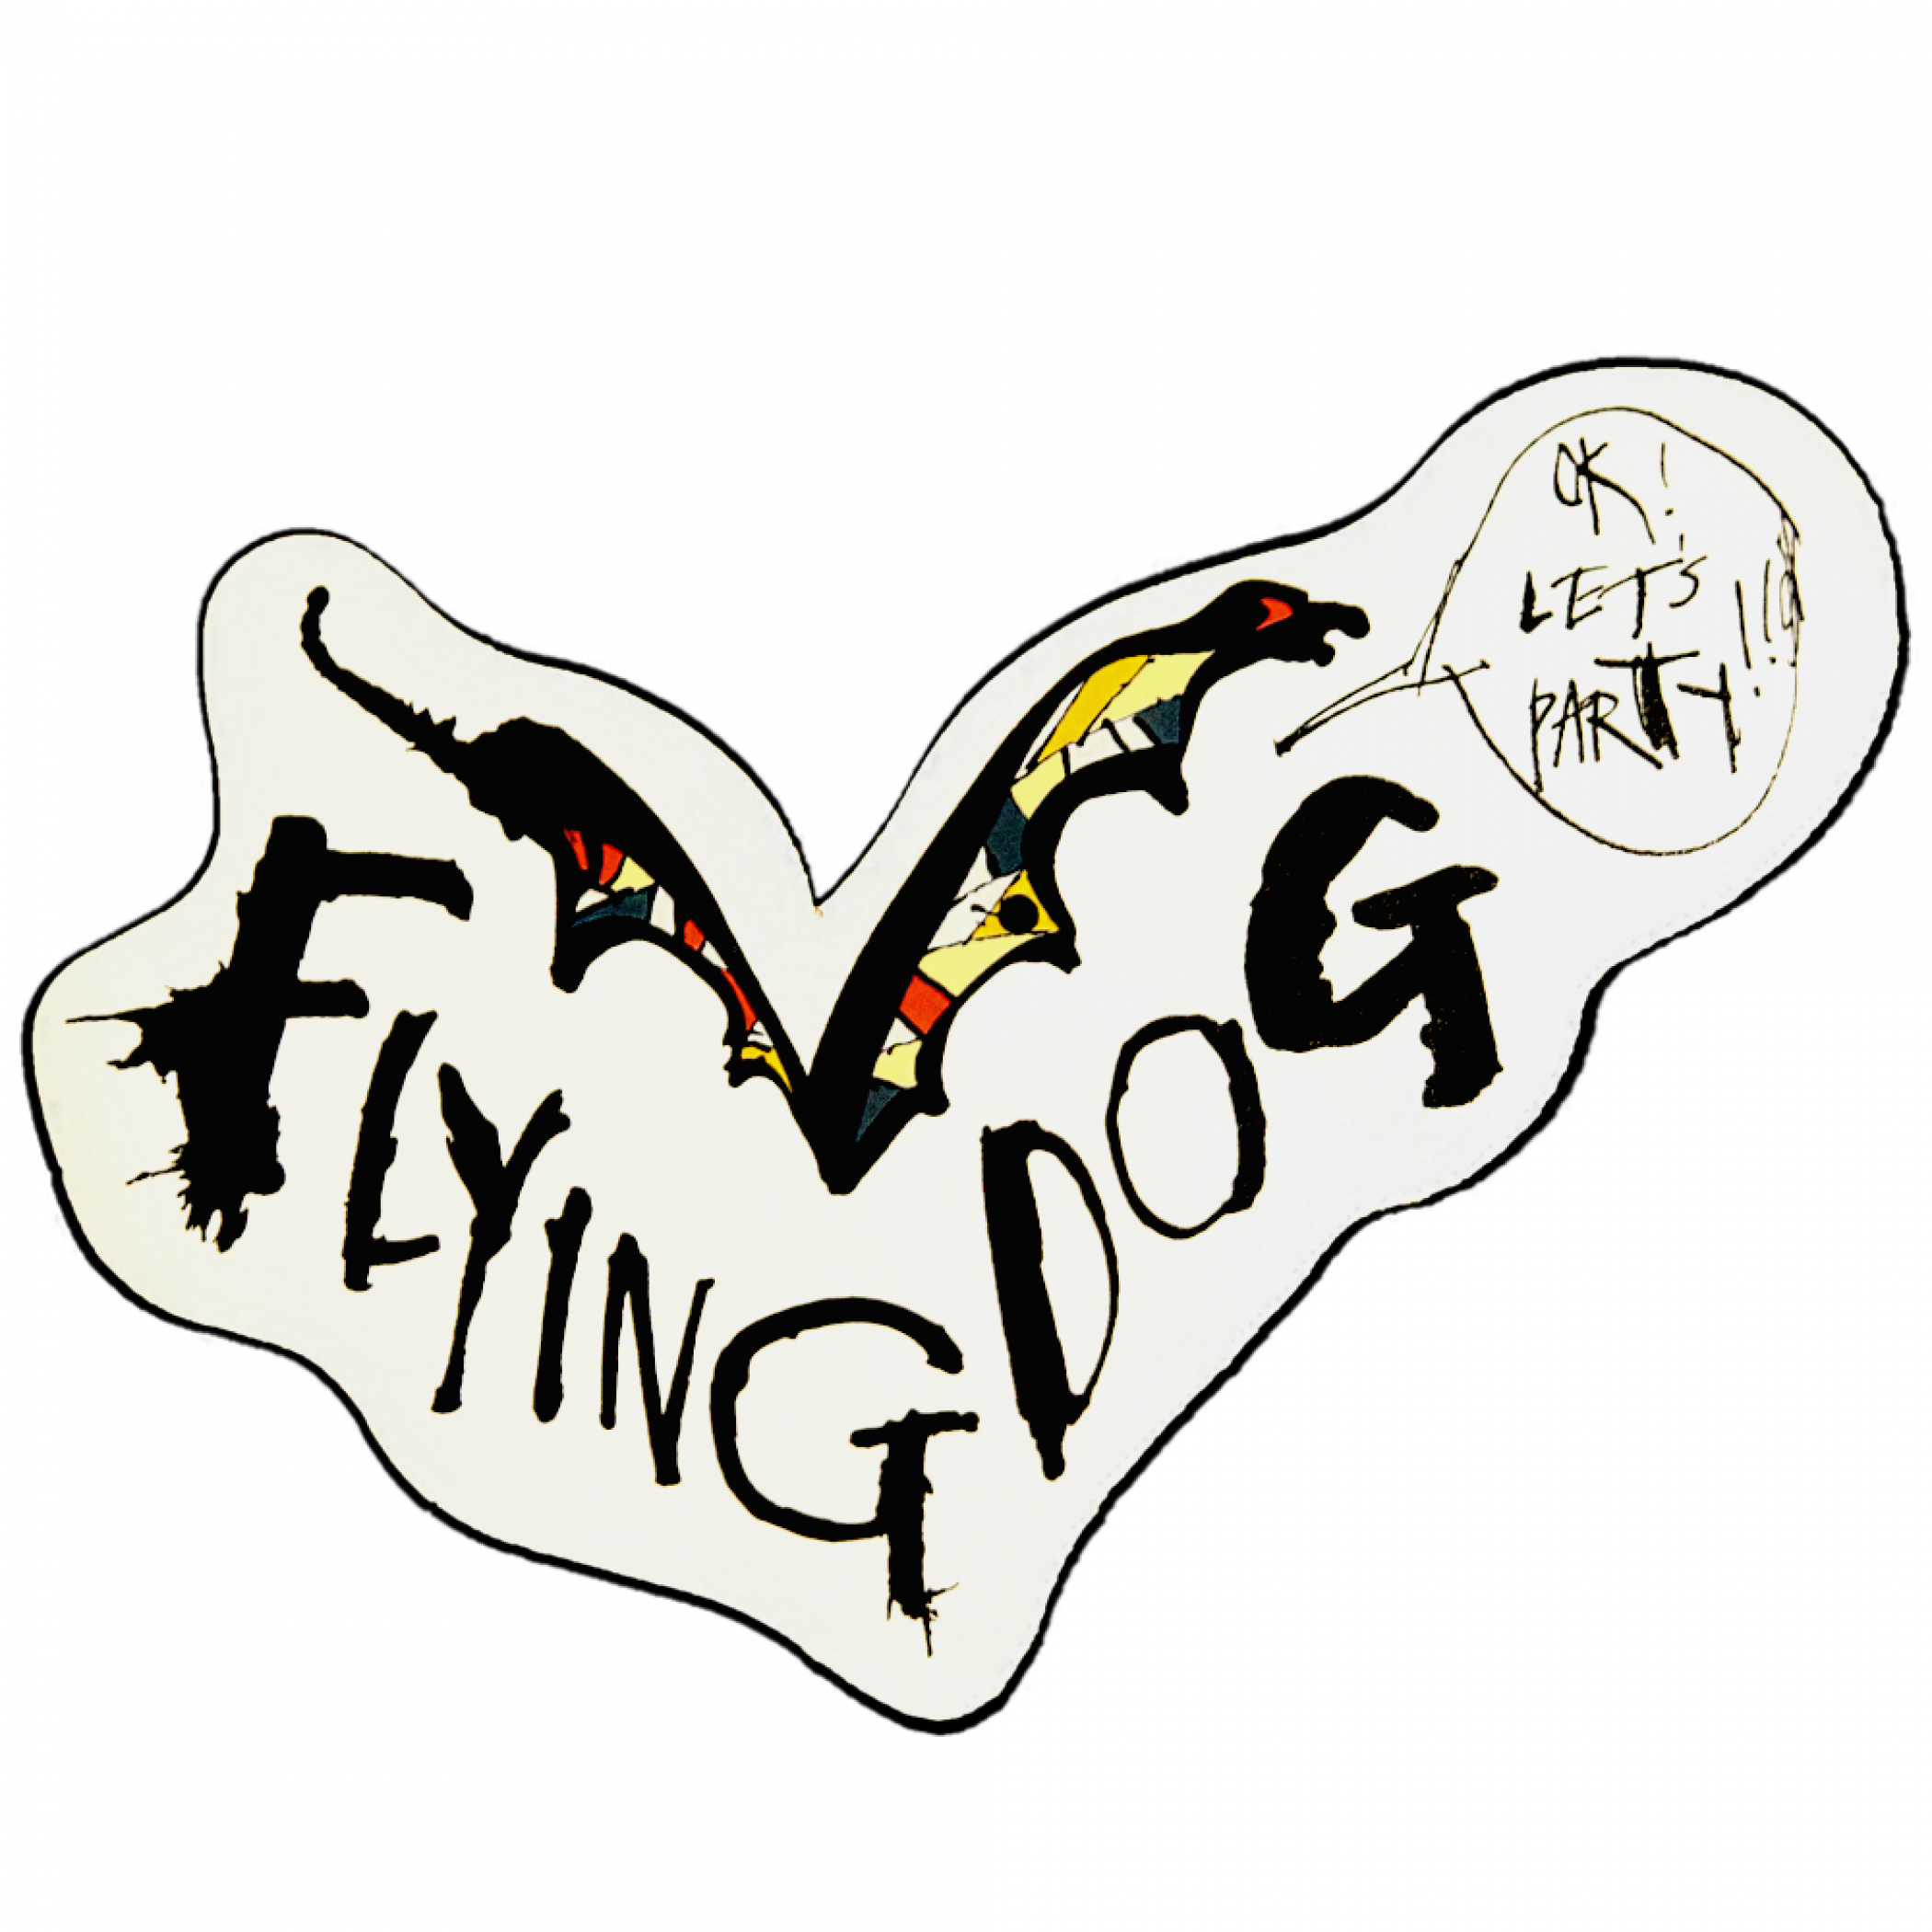 Flying Dog Brewery Diecut Metal Let's Party Sticker